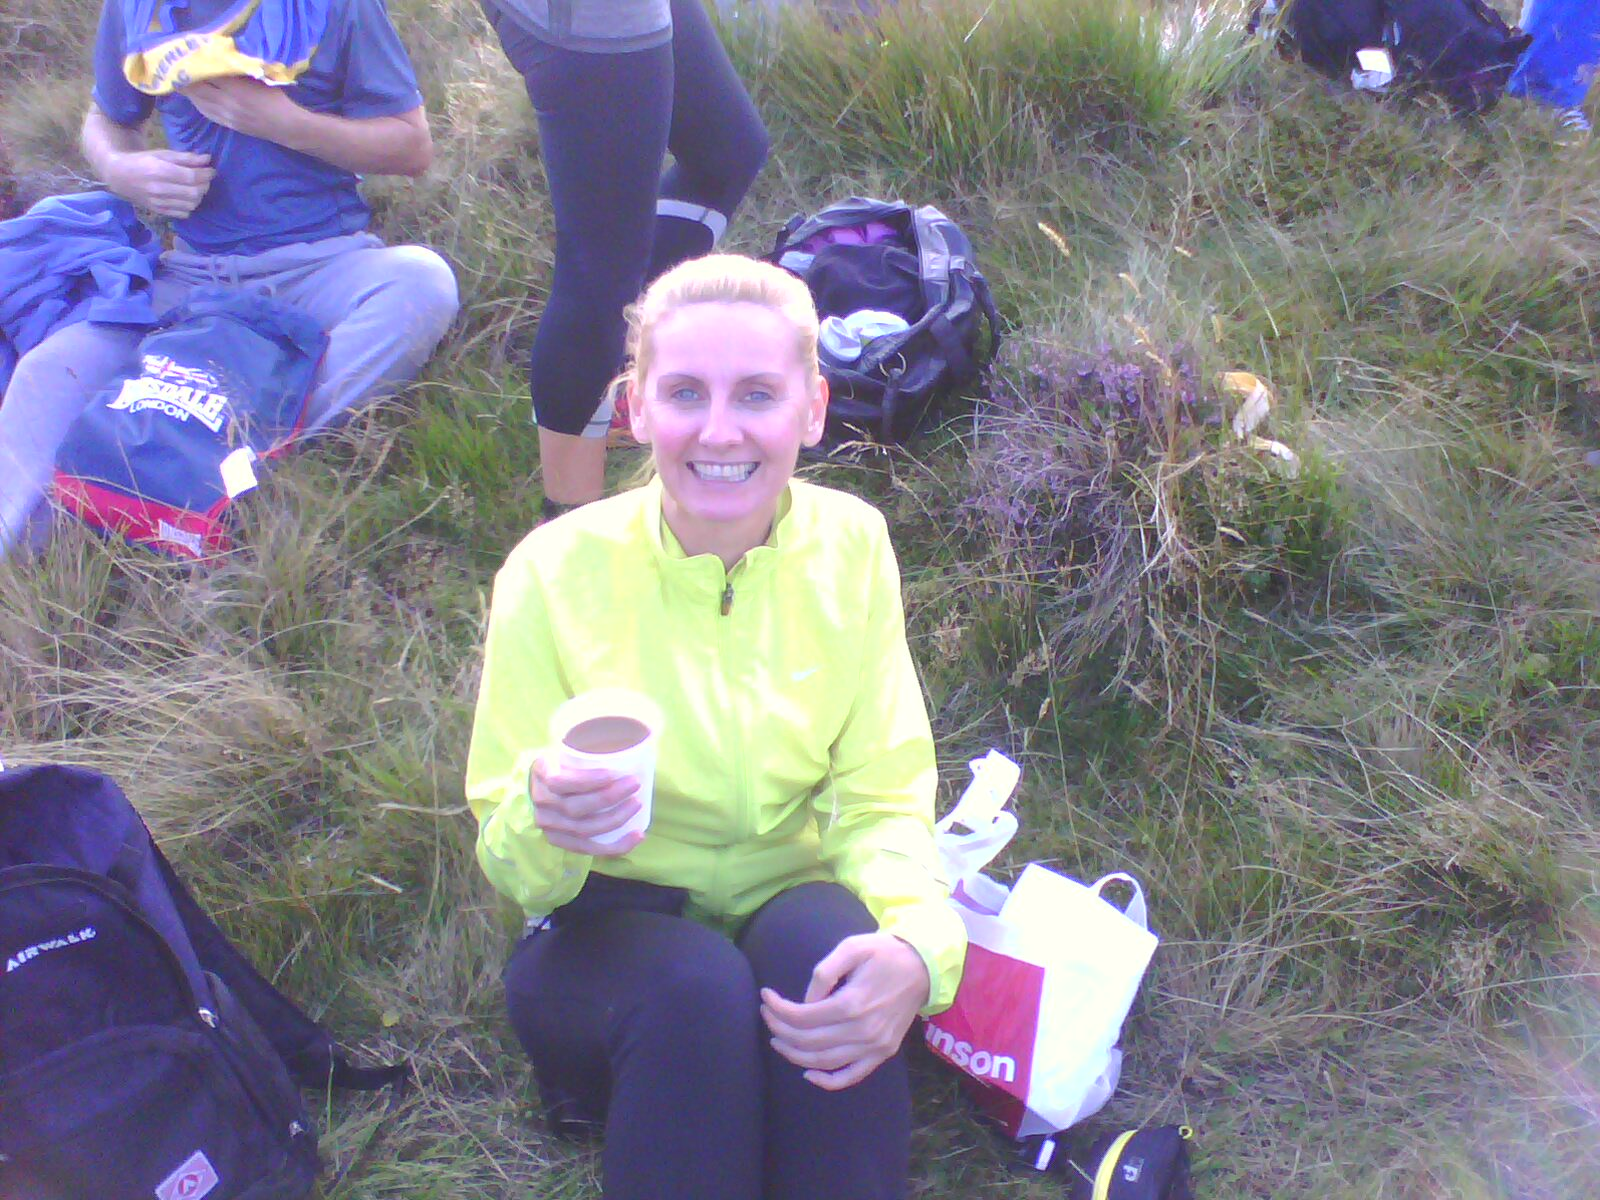 Coffee for Clarabelle, before the marathon